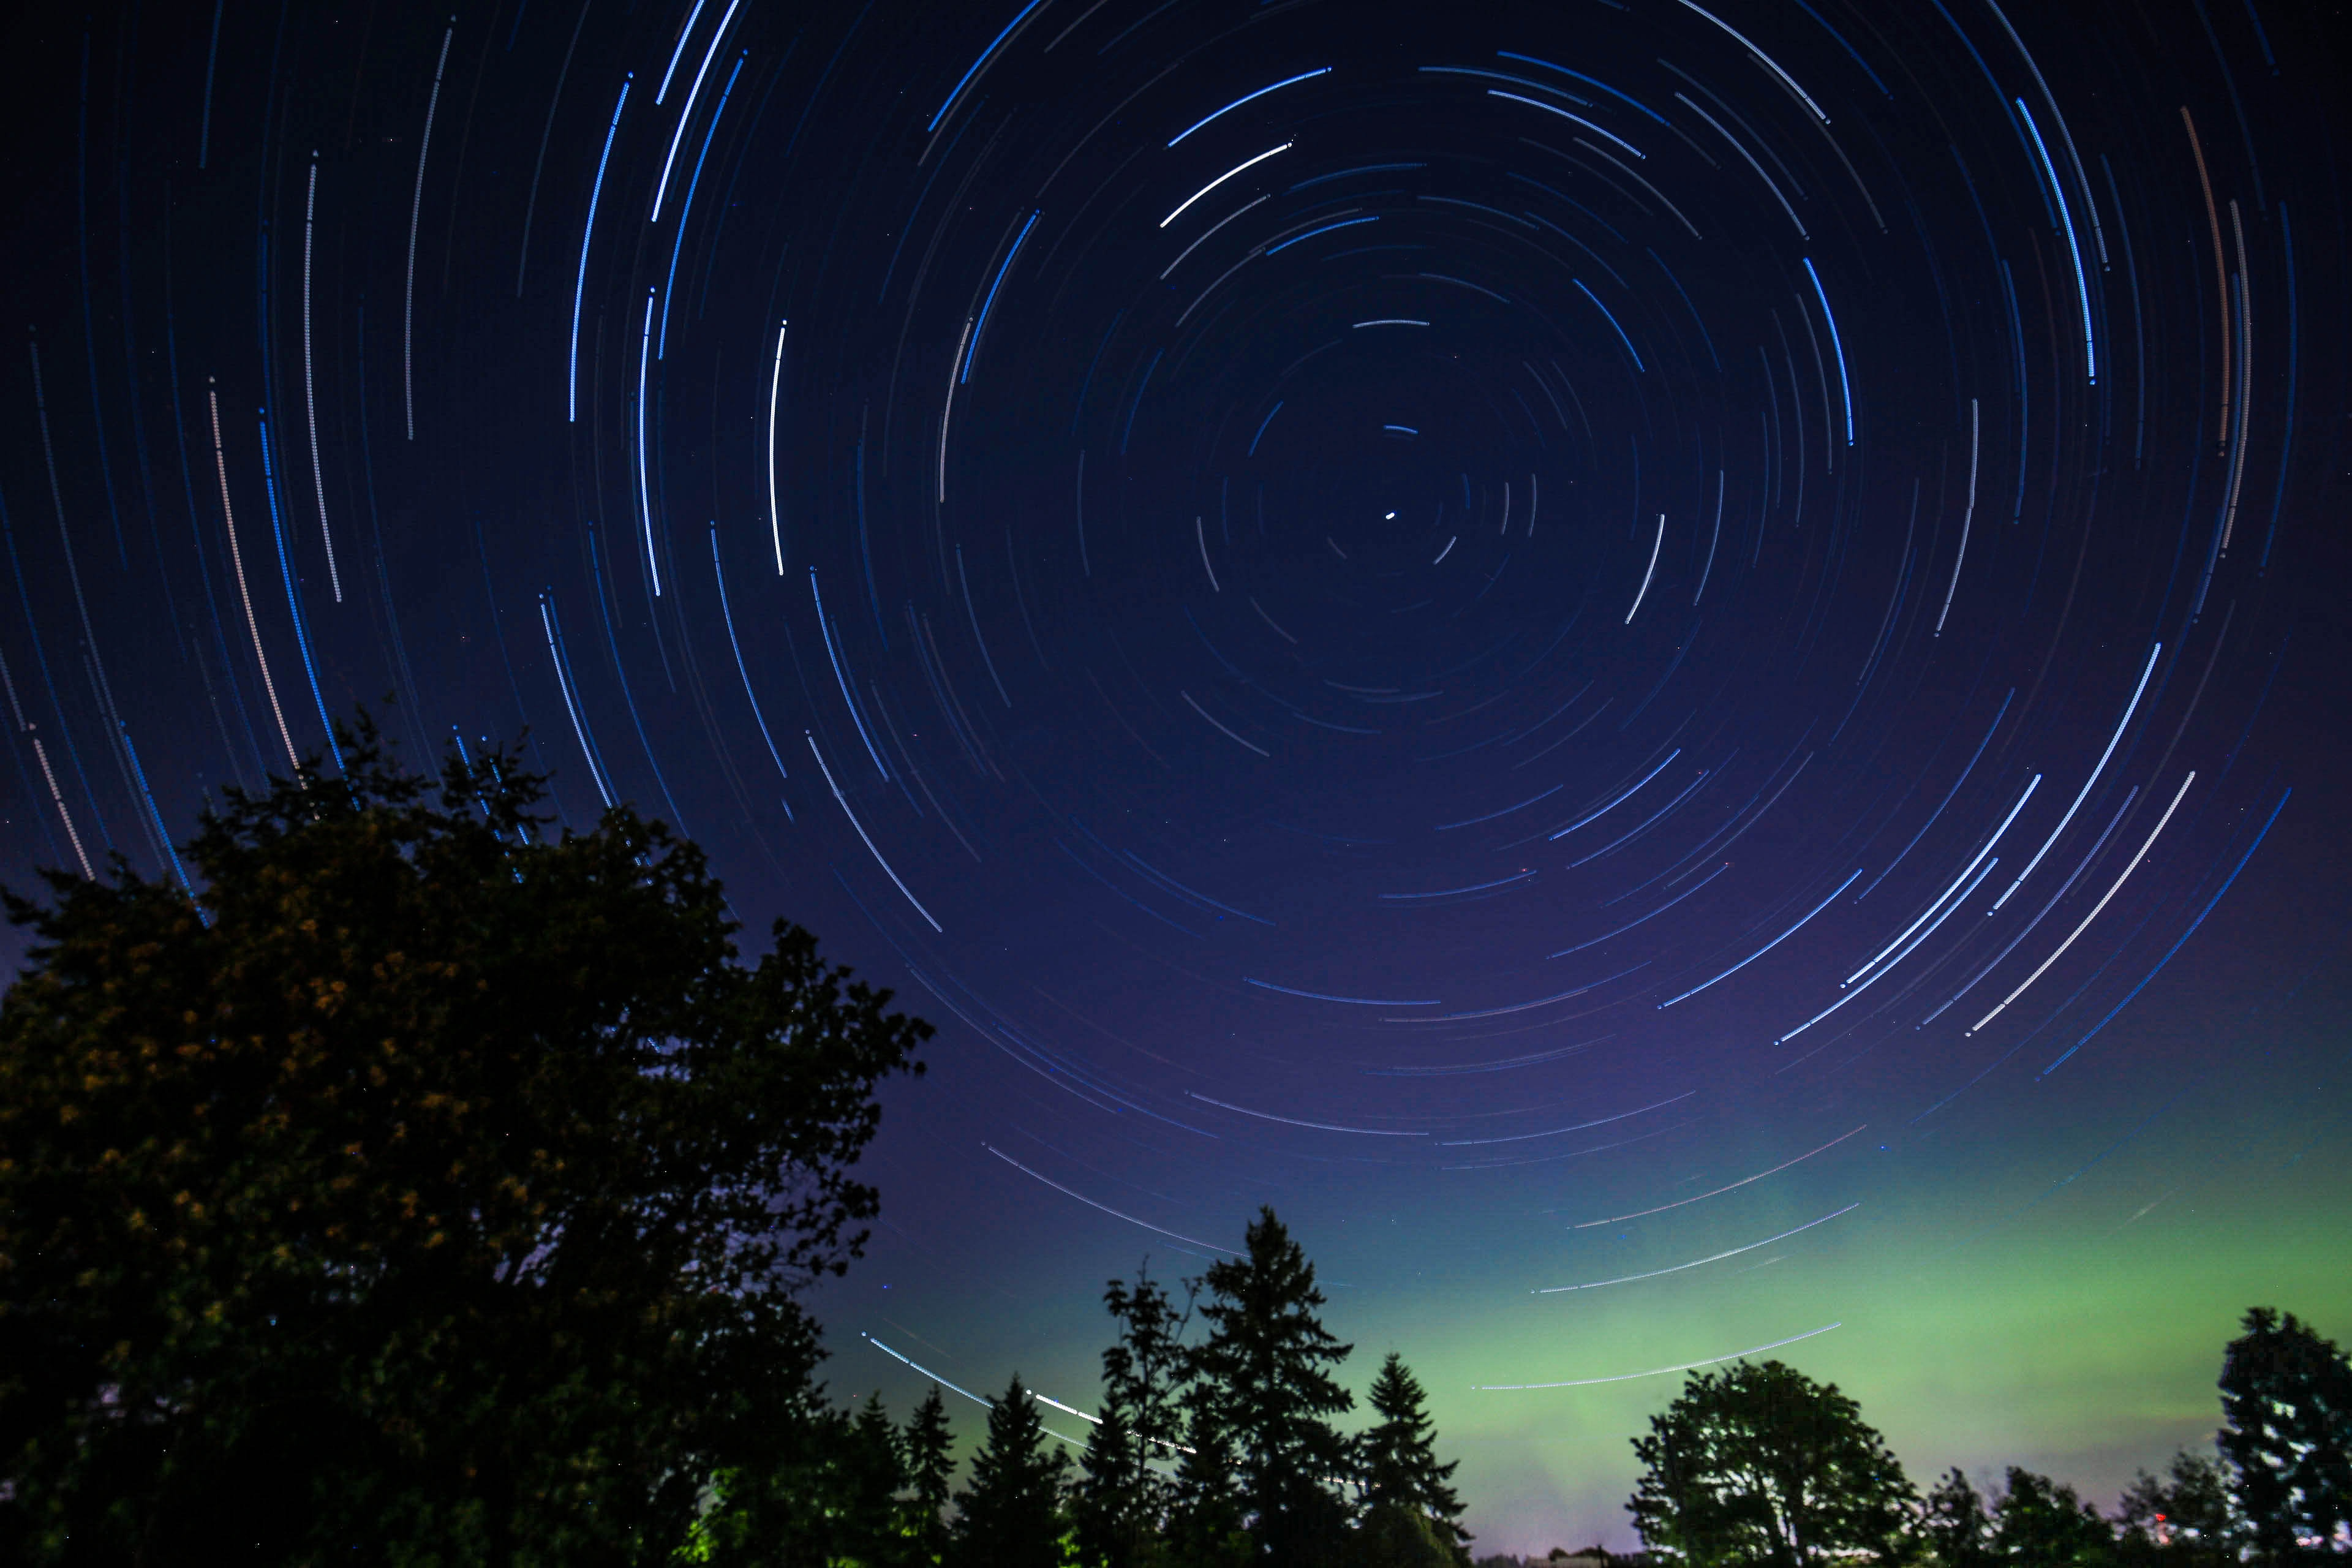 In an indigo sky, circles of stars' trails are created by leaving a camera lens open